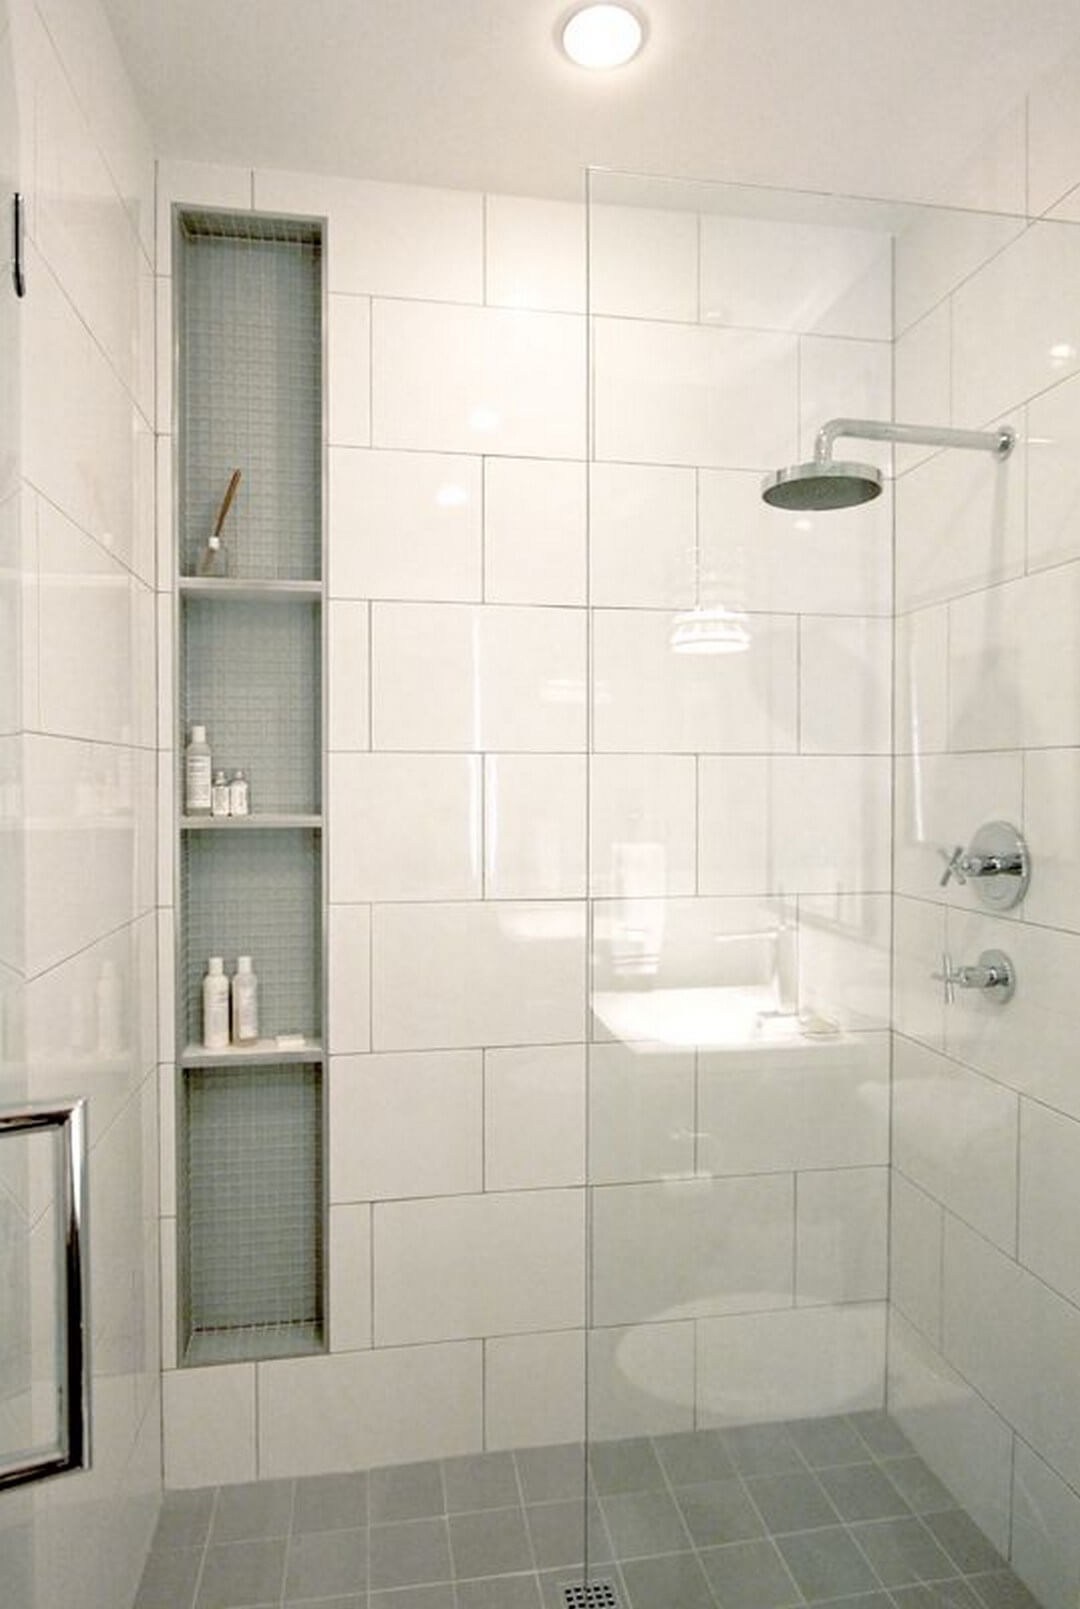 Bathroom Tiled Shower Design Ideas ~ Best shower tile ideas and designs for